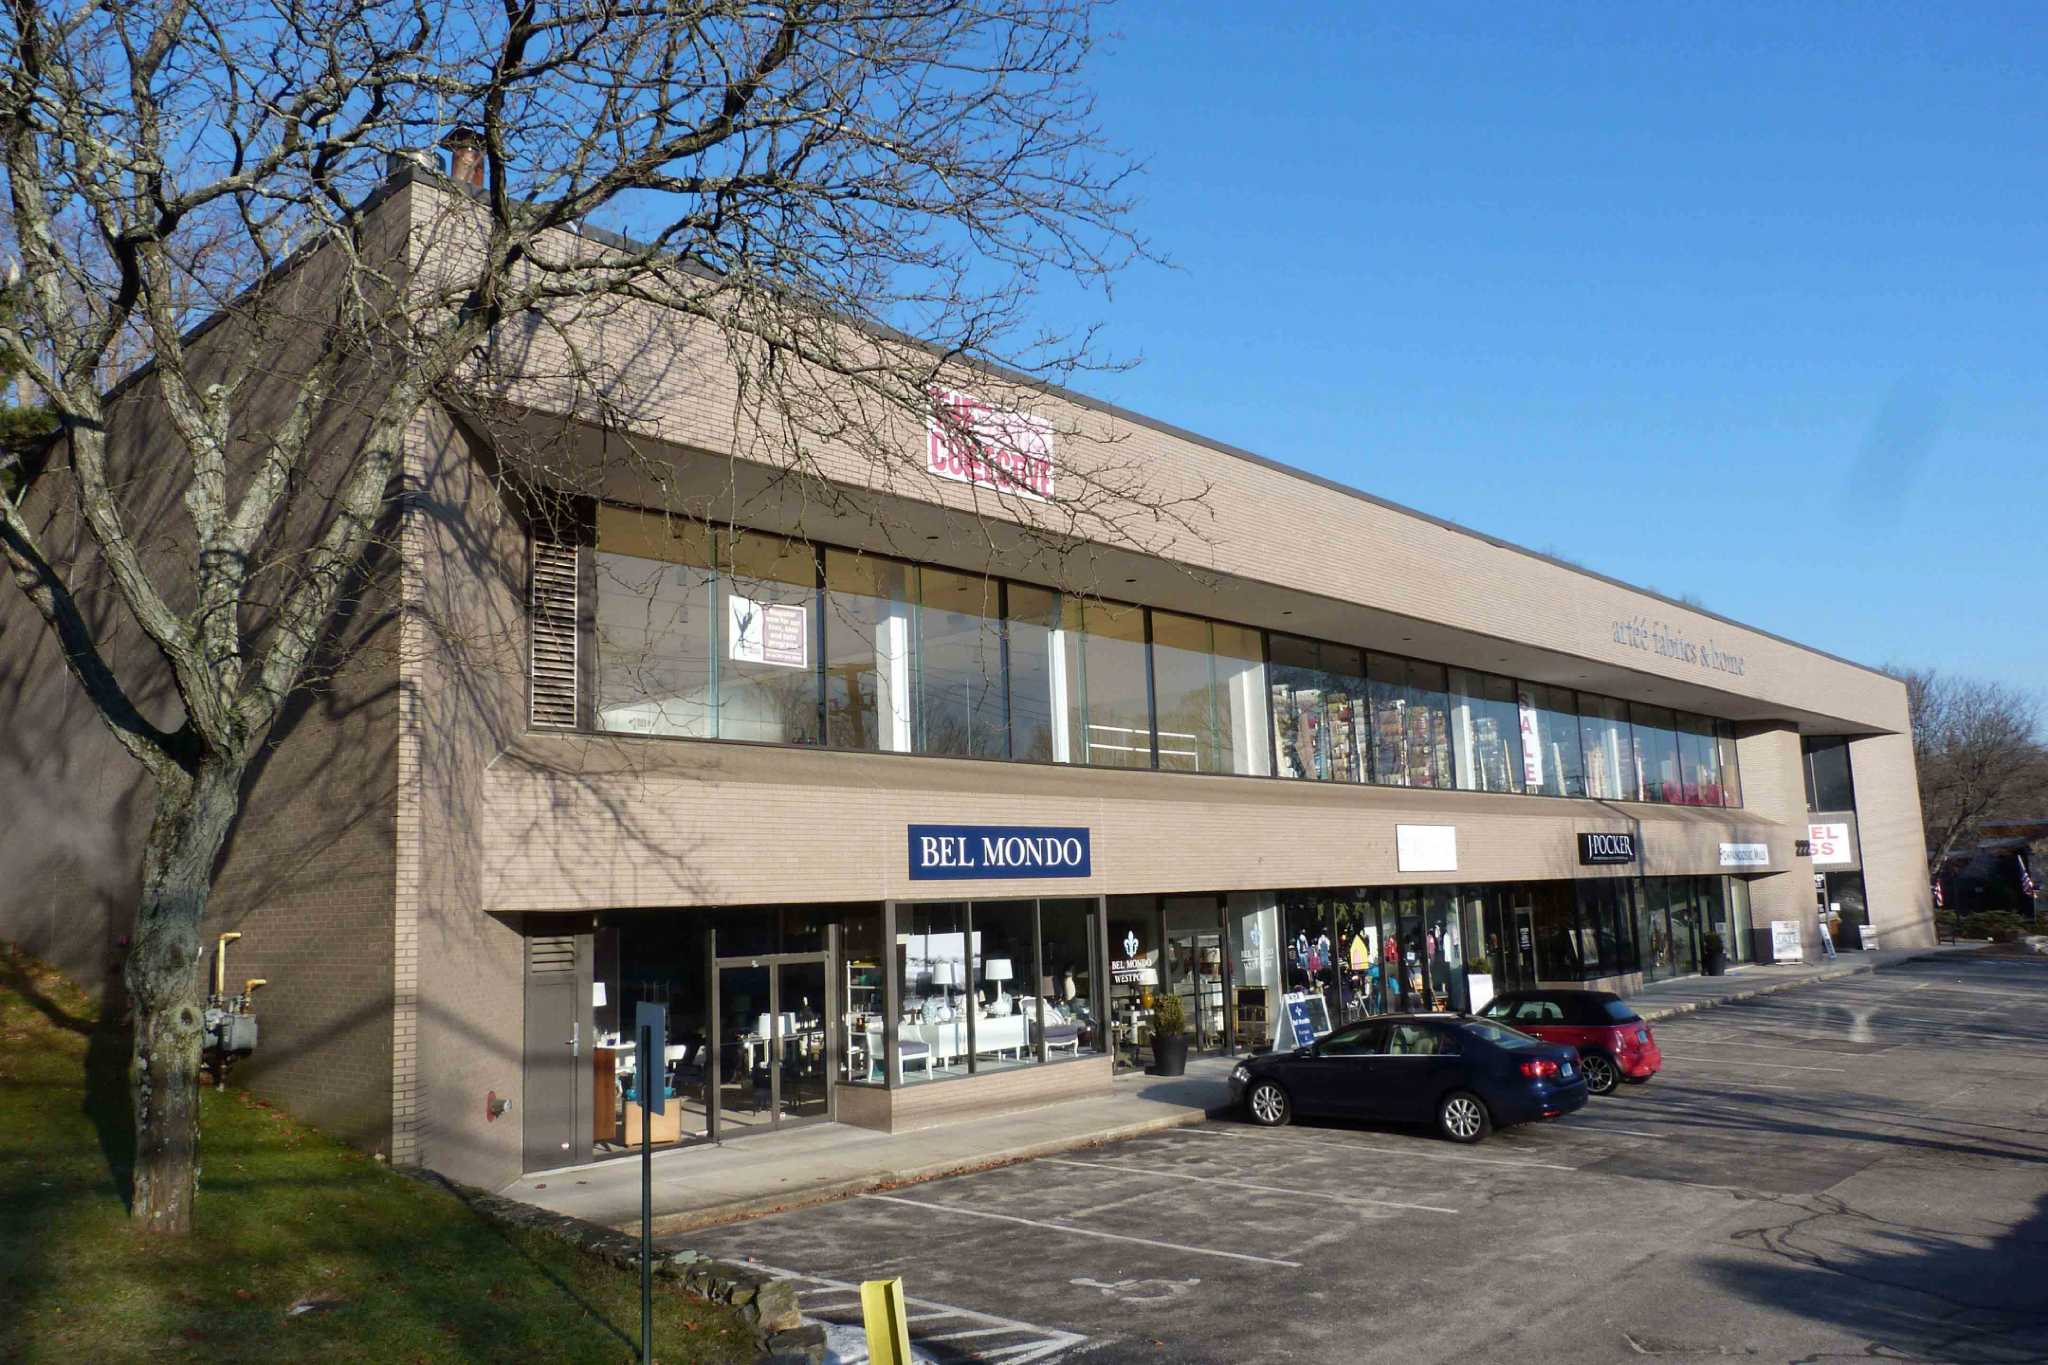 Post road west commercial building sold for million for 3 storey commercial building design